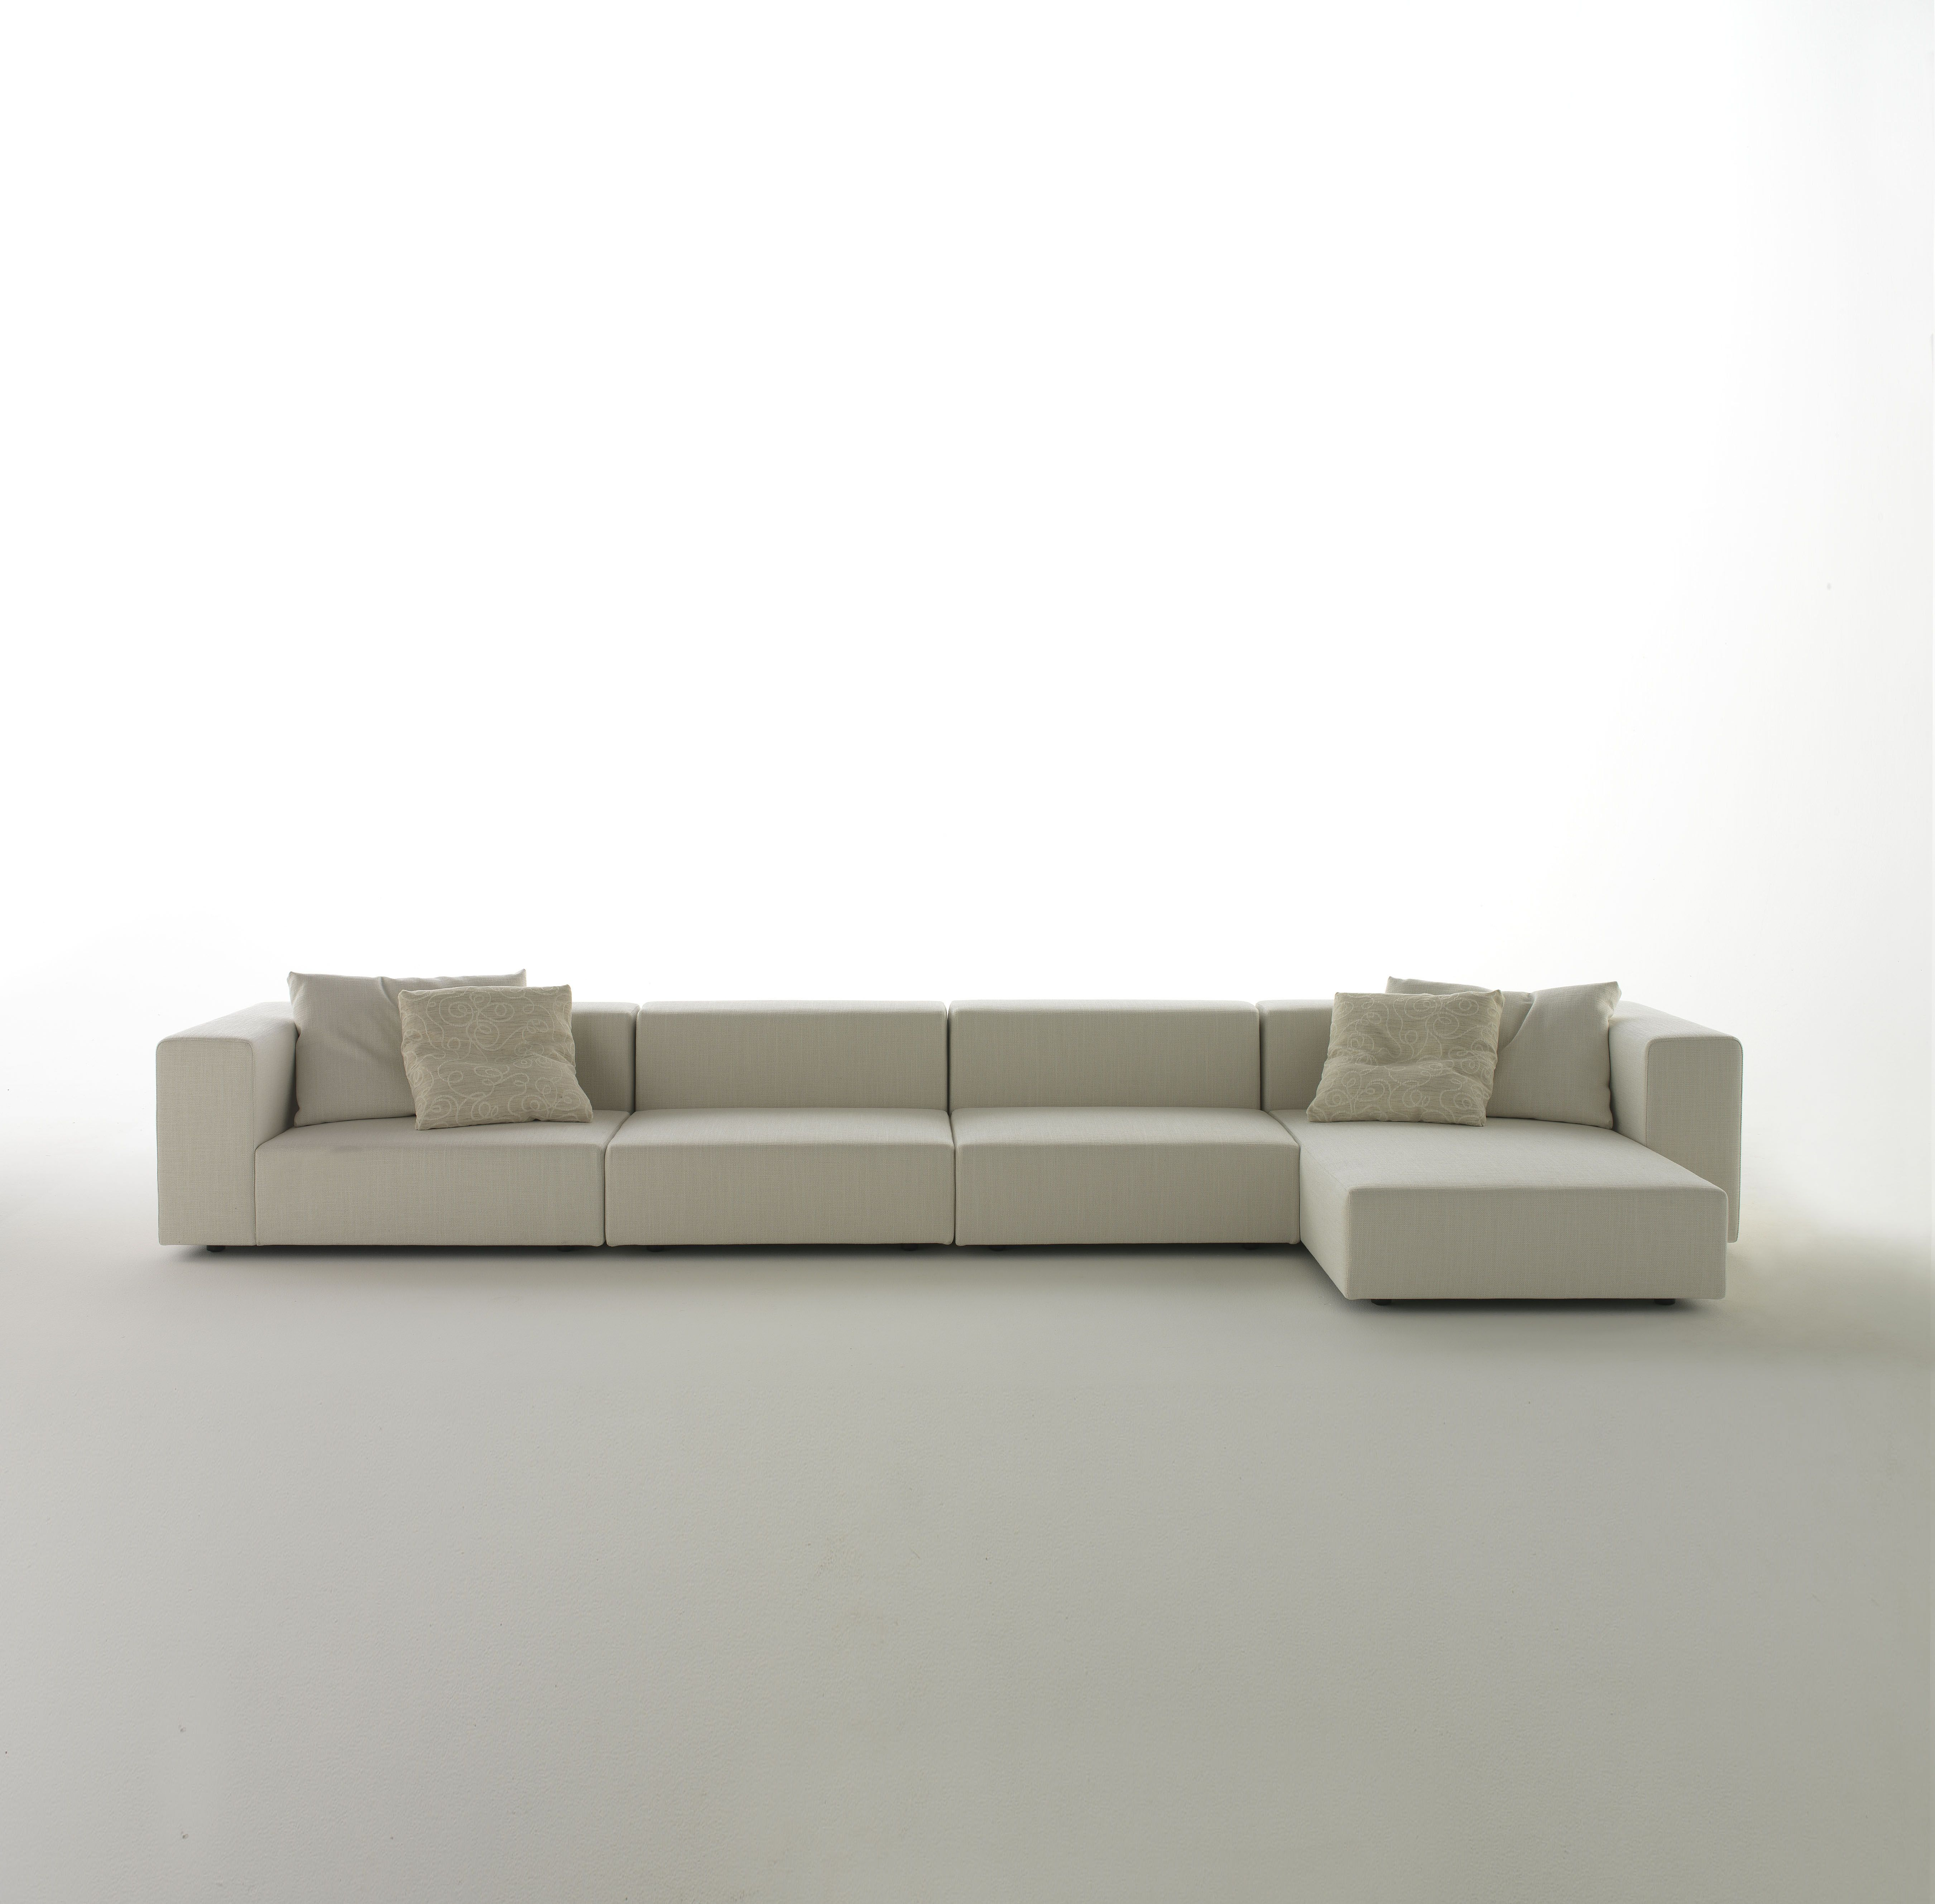 Living Divani The Wall Sofa Sofá Living Divani Modelo Neo Wall Couches Pinterest Couch